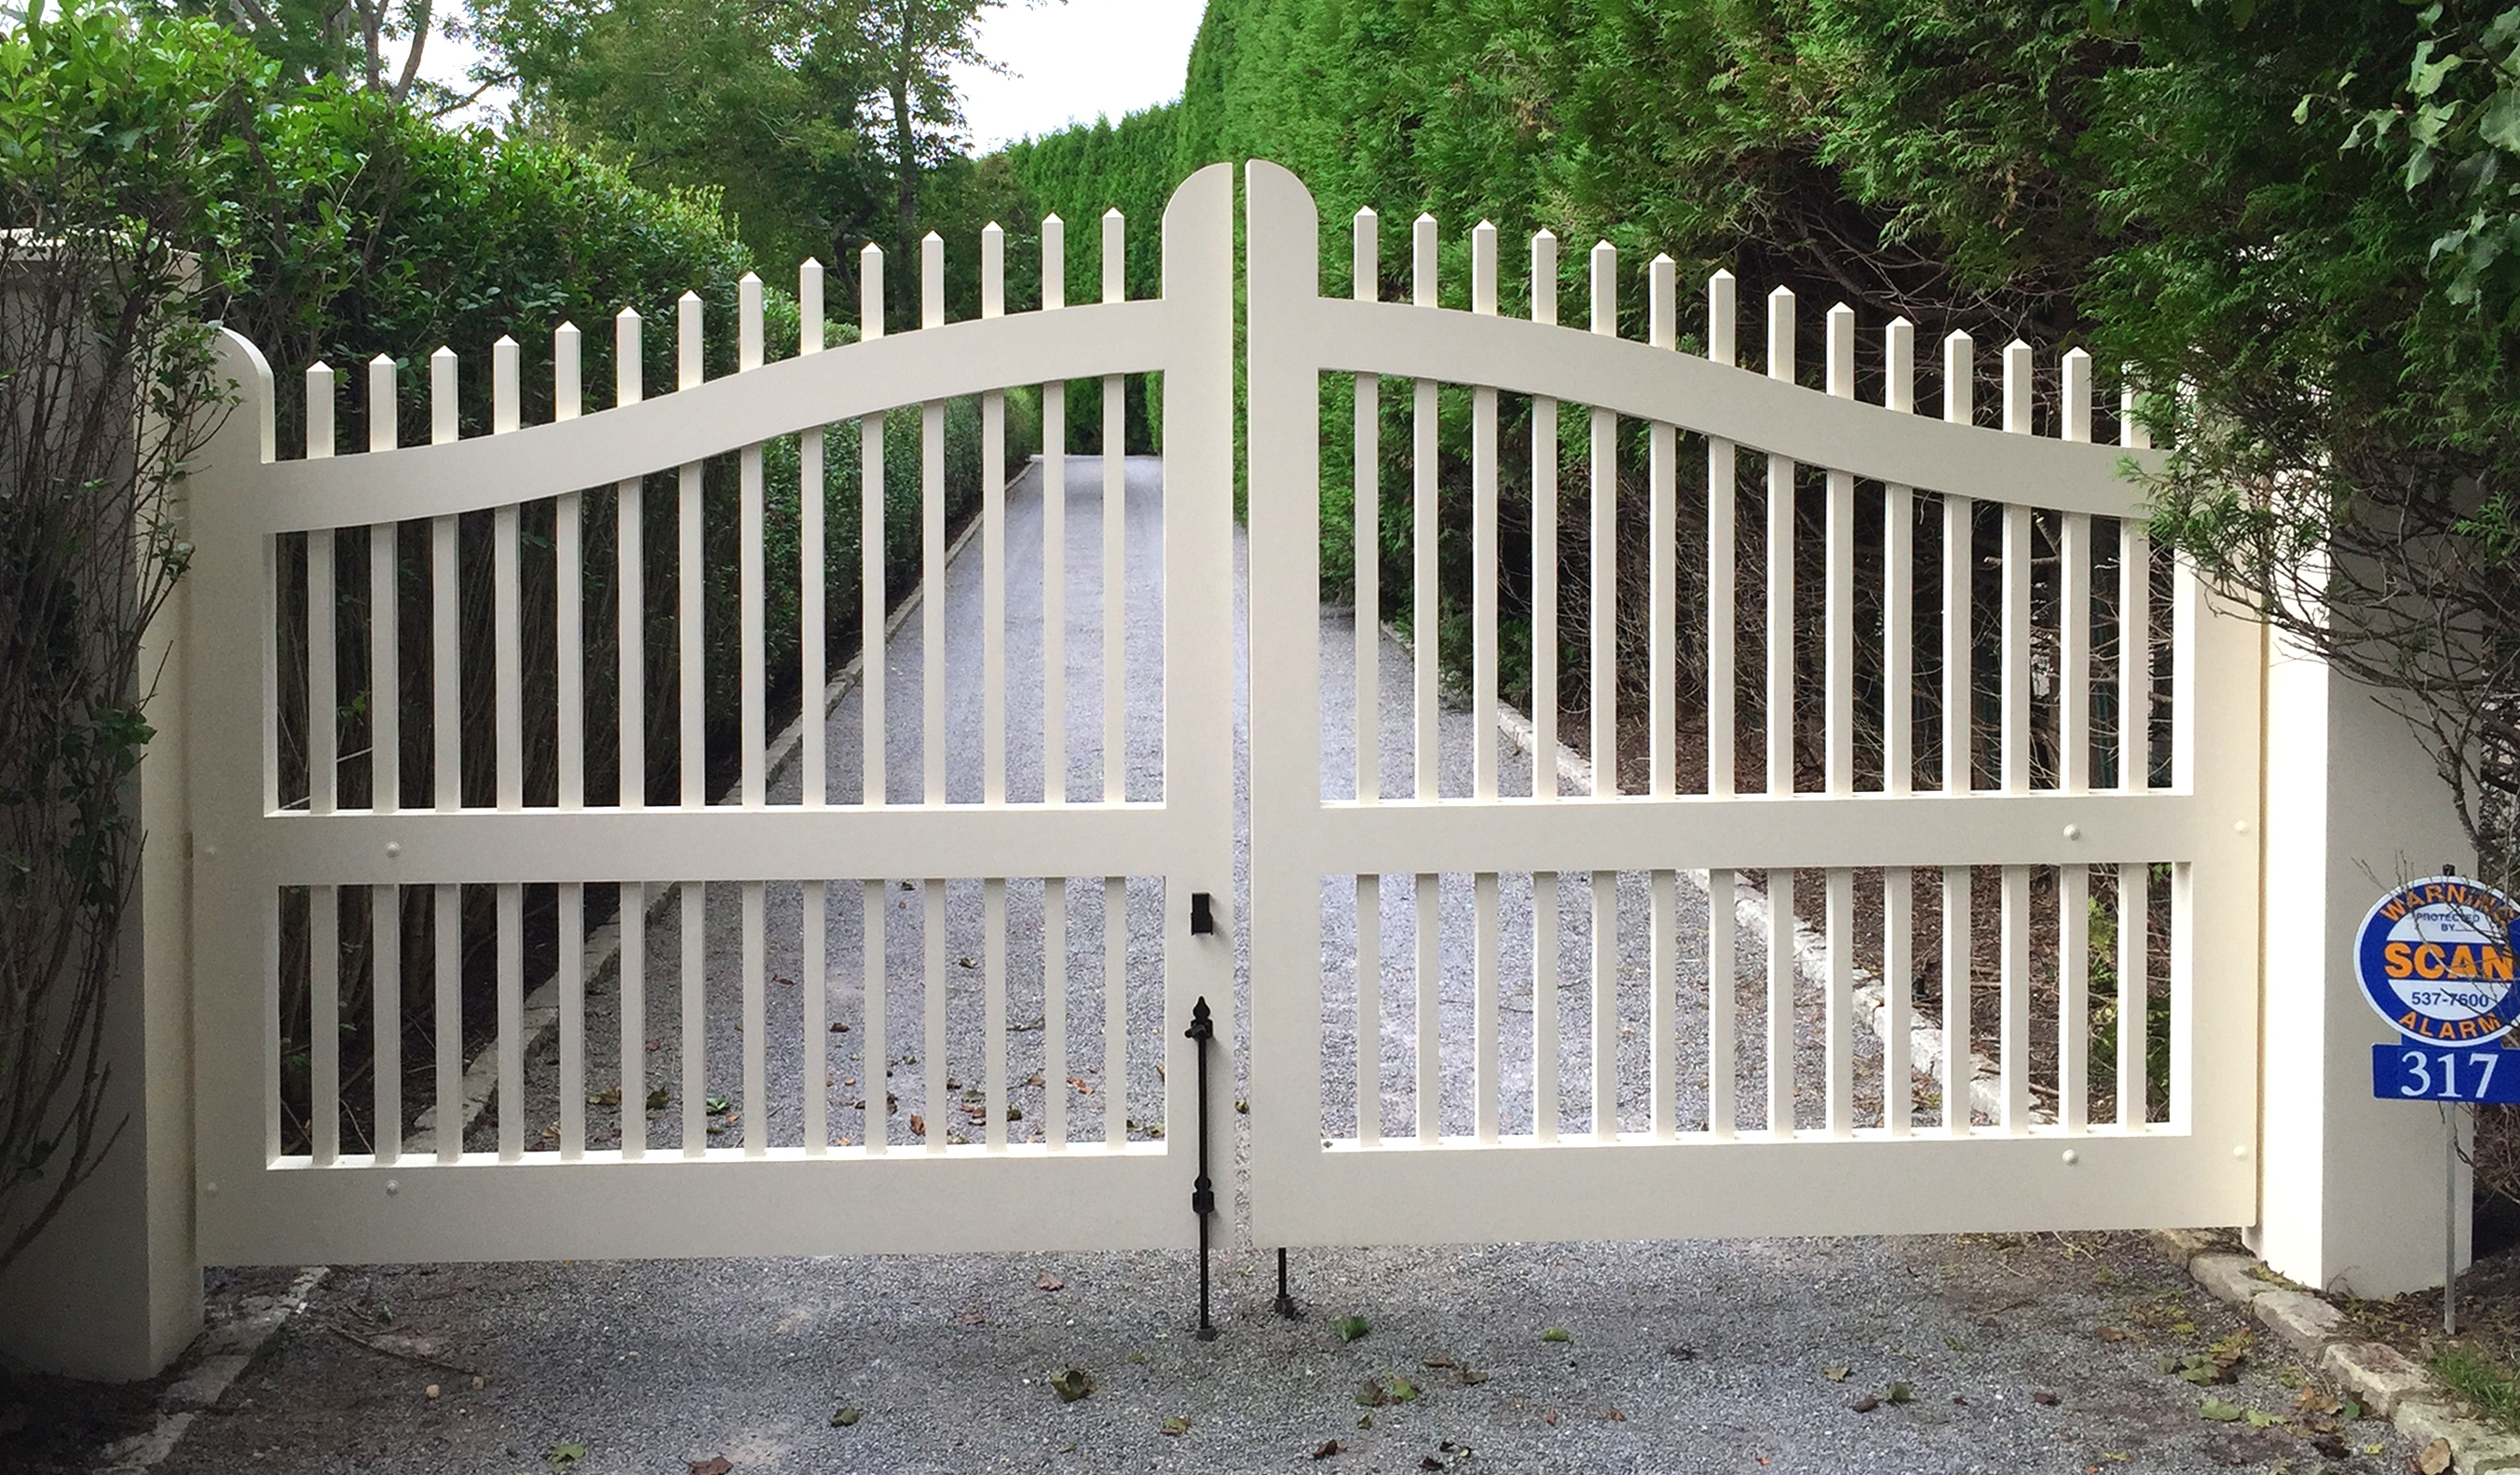 How To Build A Wood Picket Fence Gate Madison Art Center